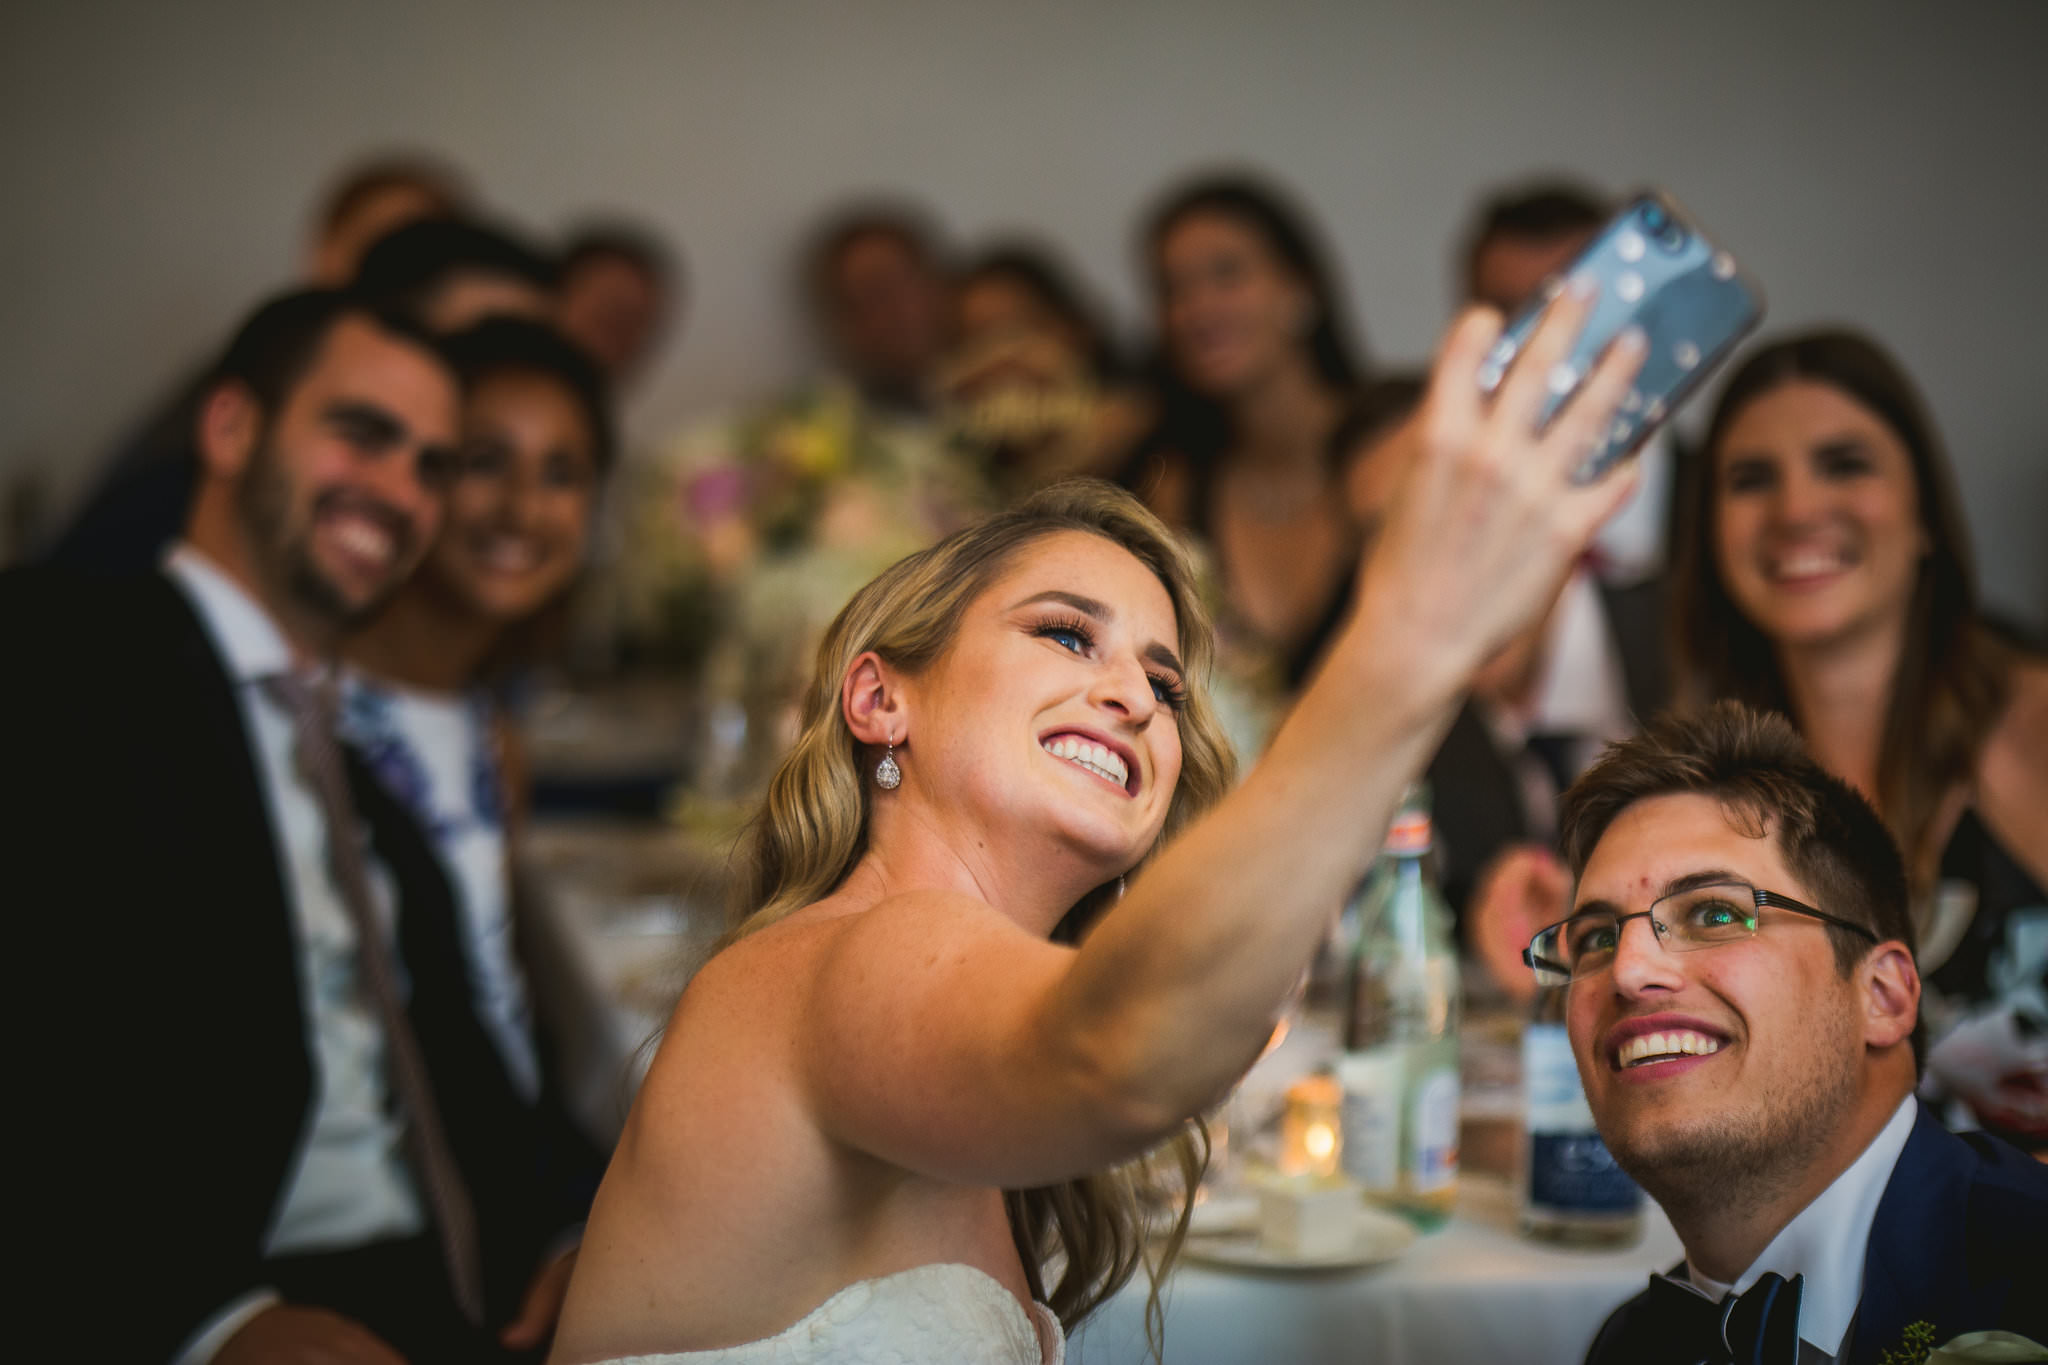 bride taking selfie with guests